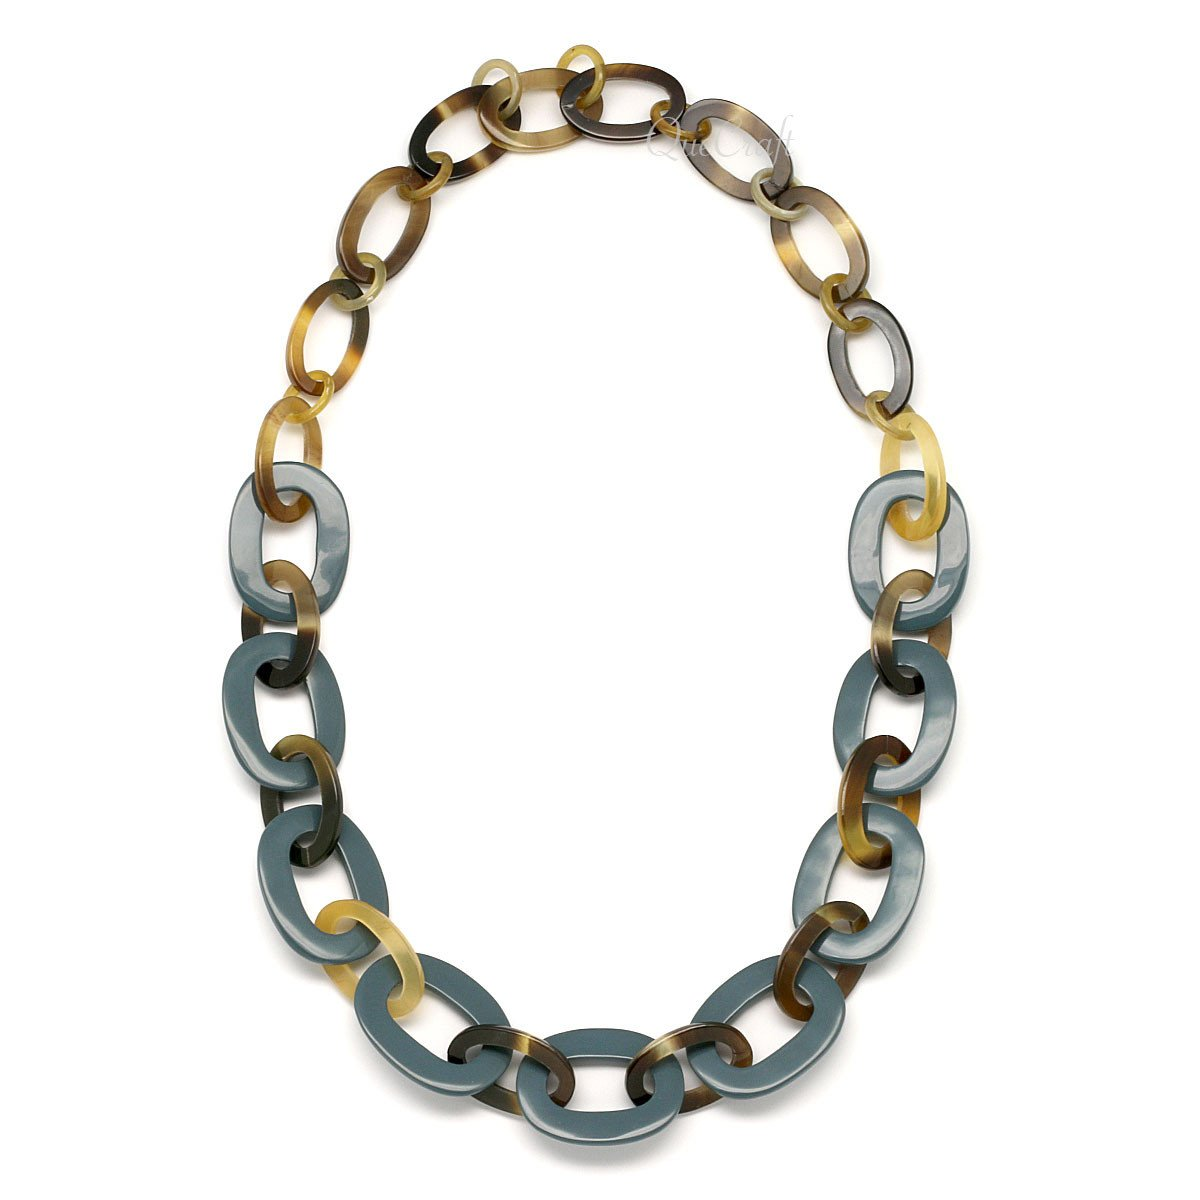 Horn & Lacquer Chain Necklace - Q4392